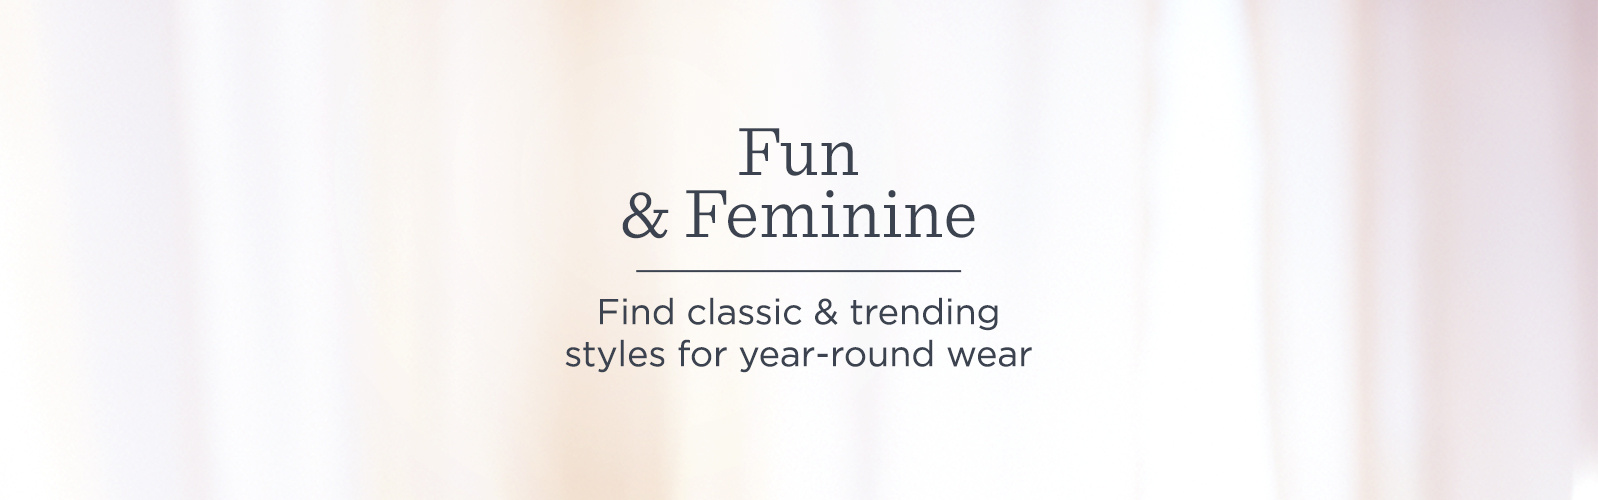 Fun & Feminine Find classic & trending styles for year-round wear